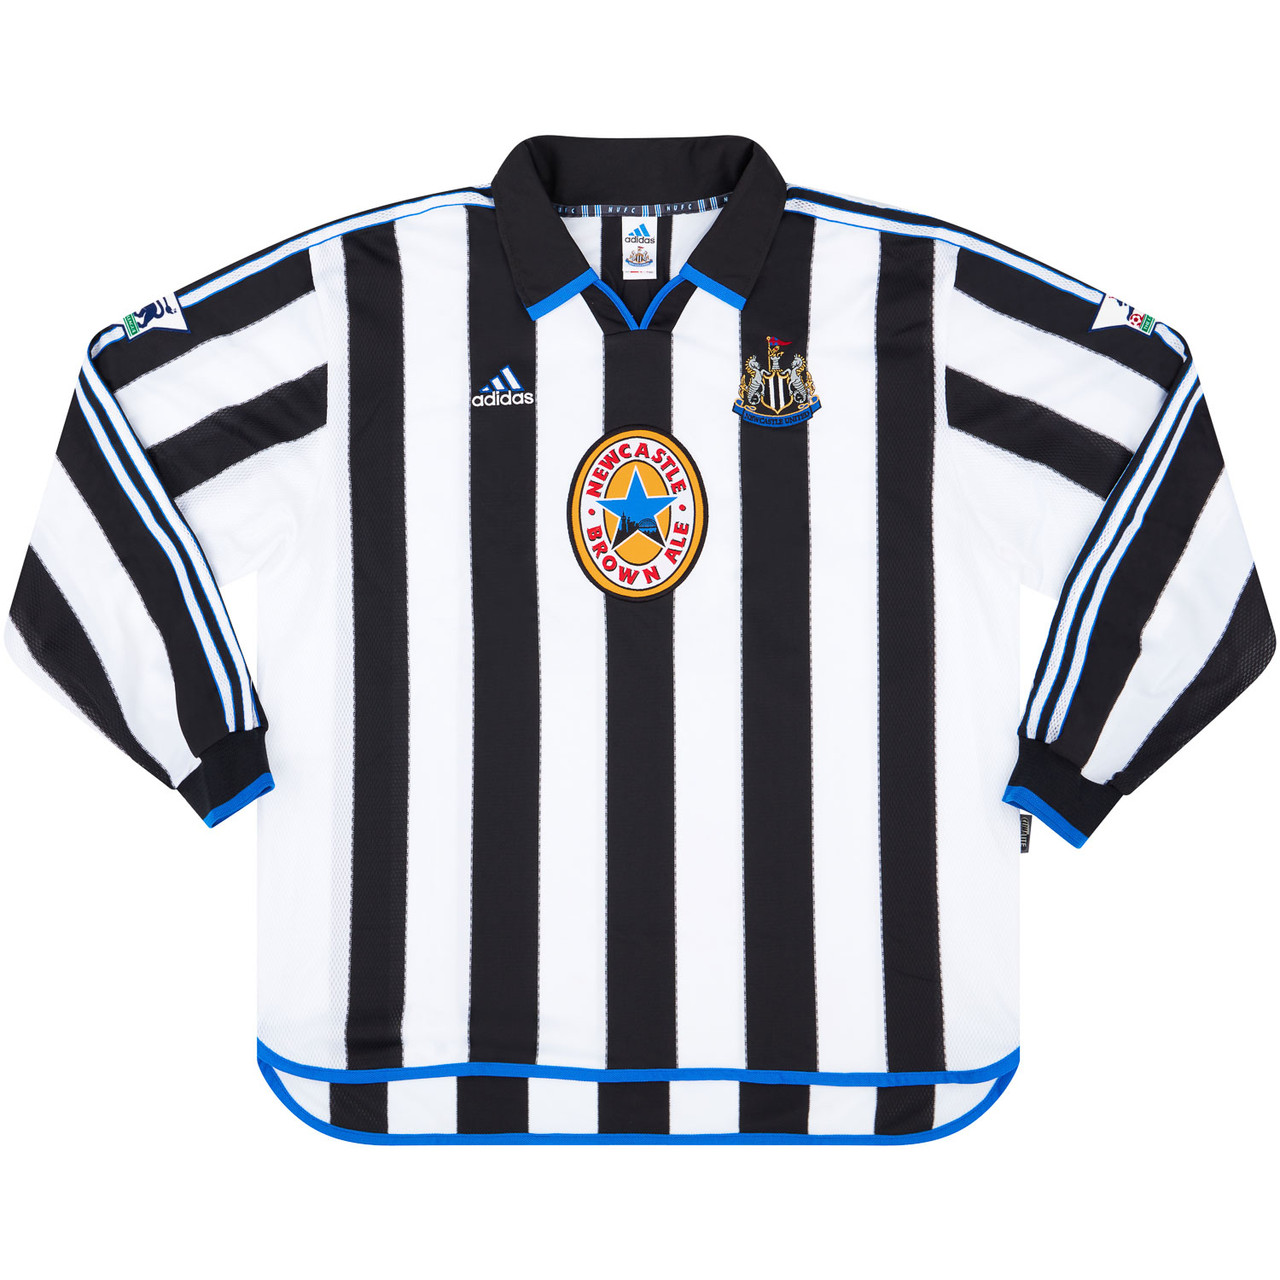 Newcastle United 1999-00 Match Issue Home Shirt #matchworn #nufc #NewcastleUnited #shirtcollector